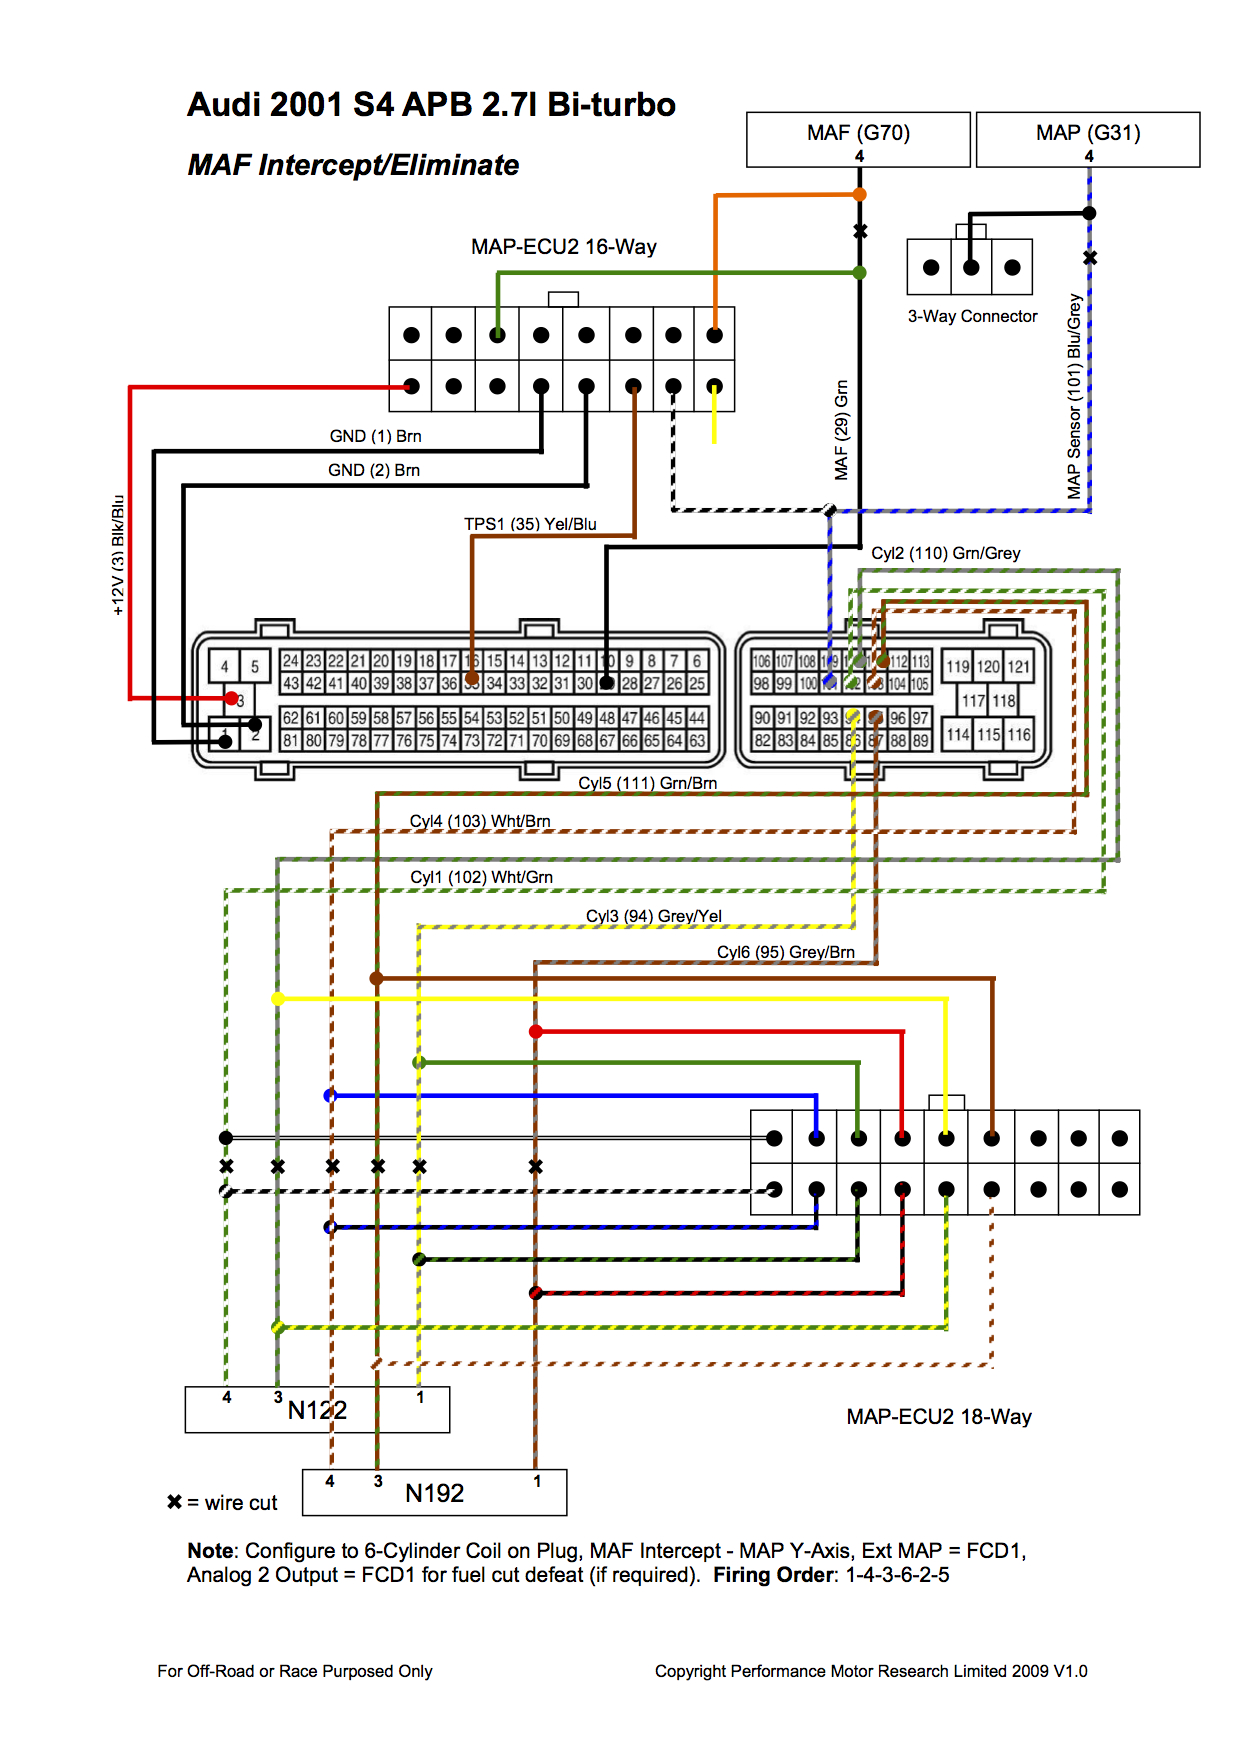 Audi S4 20011 ecu wiring diagram paccar ecu wiring diagram \u2022 wiring diagrams j 2007 nissan 350z stereo wiring diagram at cos-gaming.co